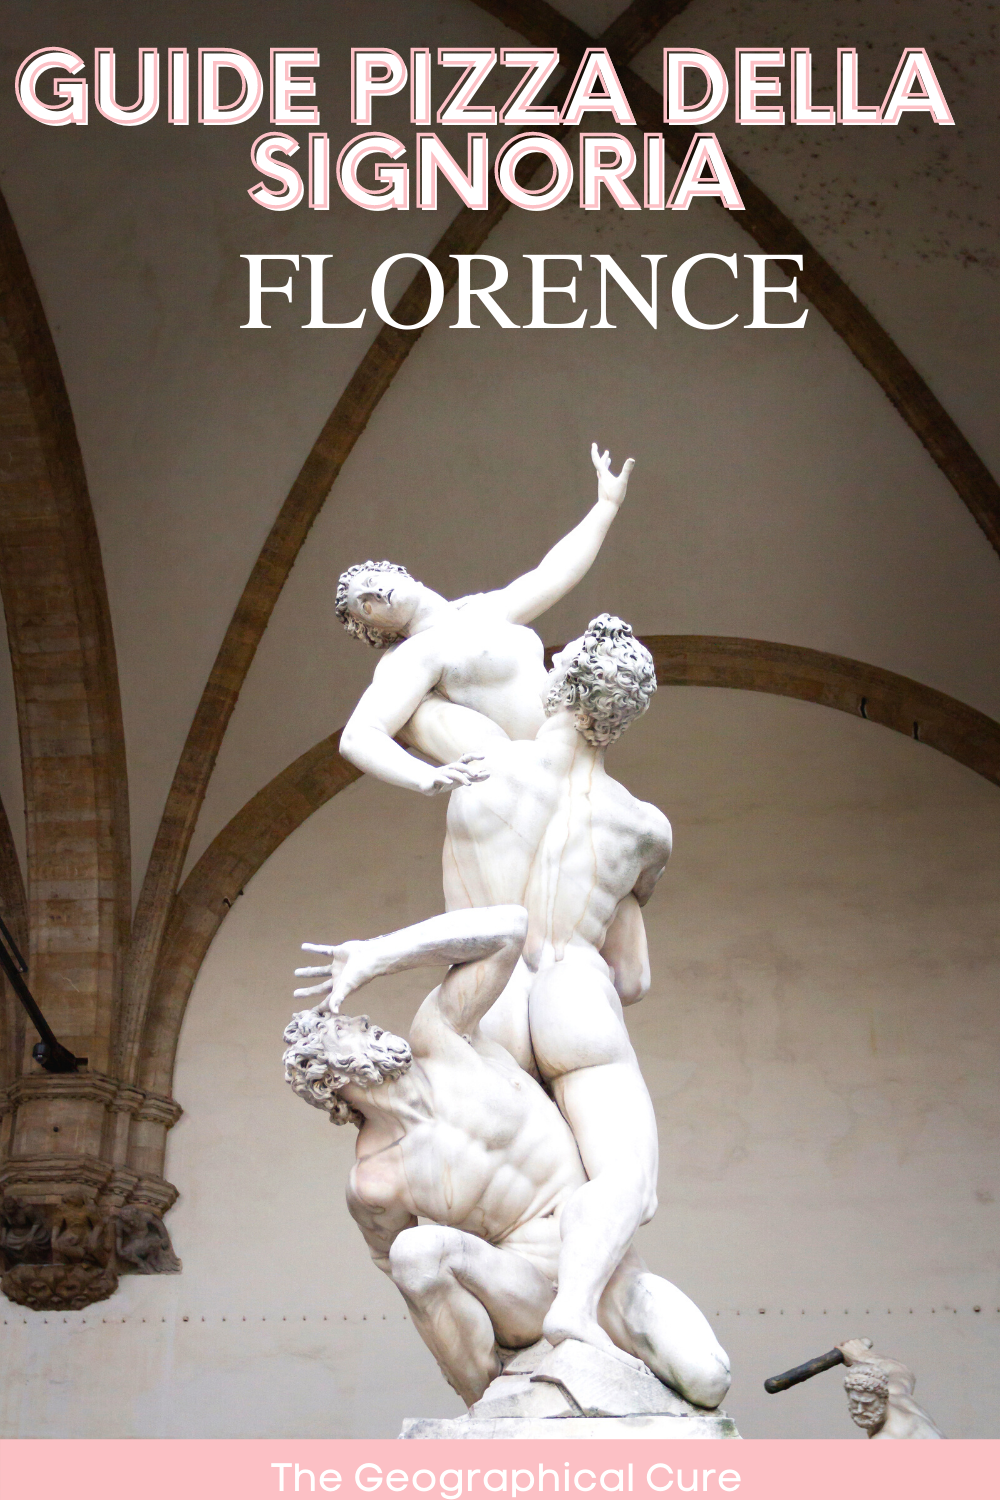 ultimate guide to the states and sculptures of Florence's famed Piazza della Signoria